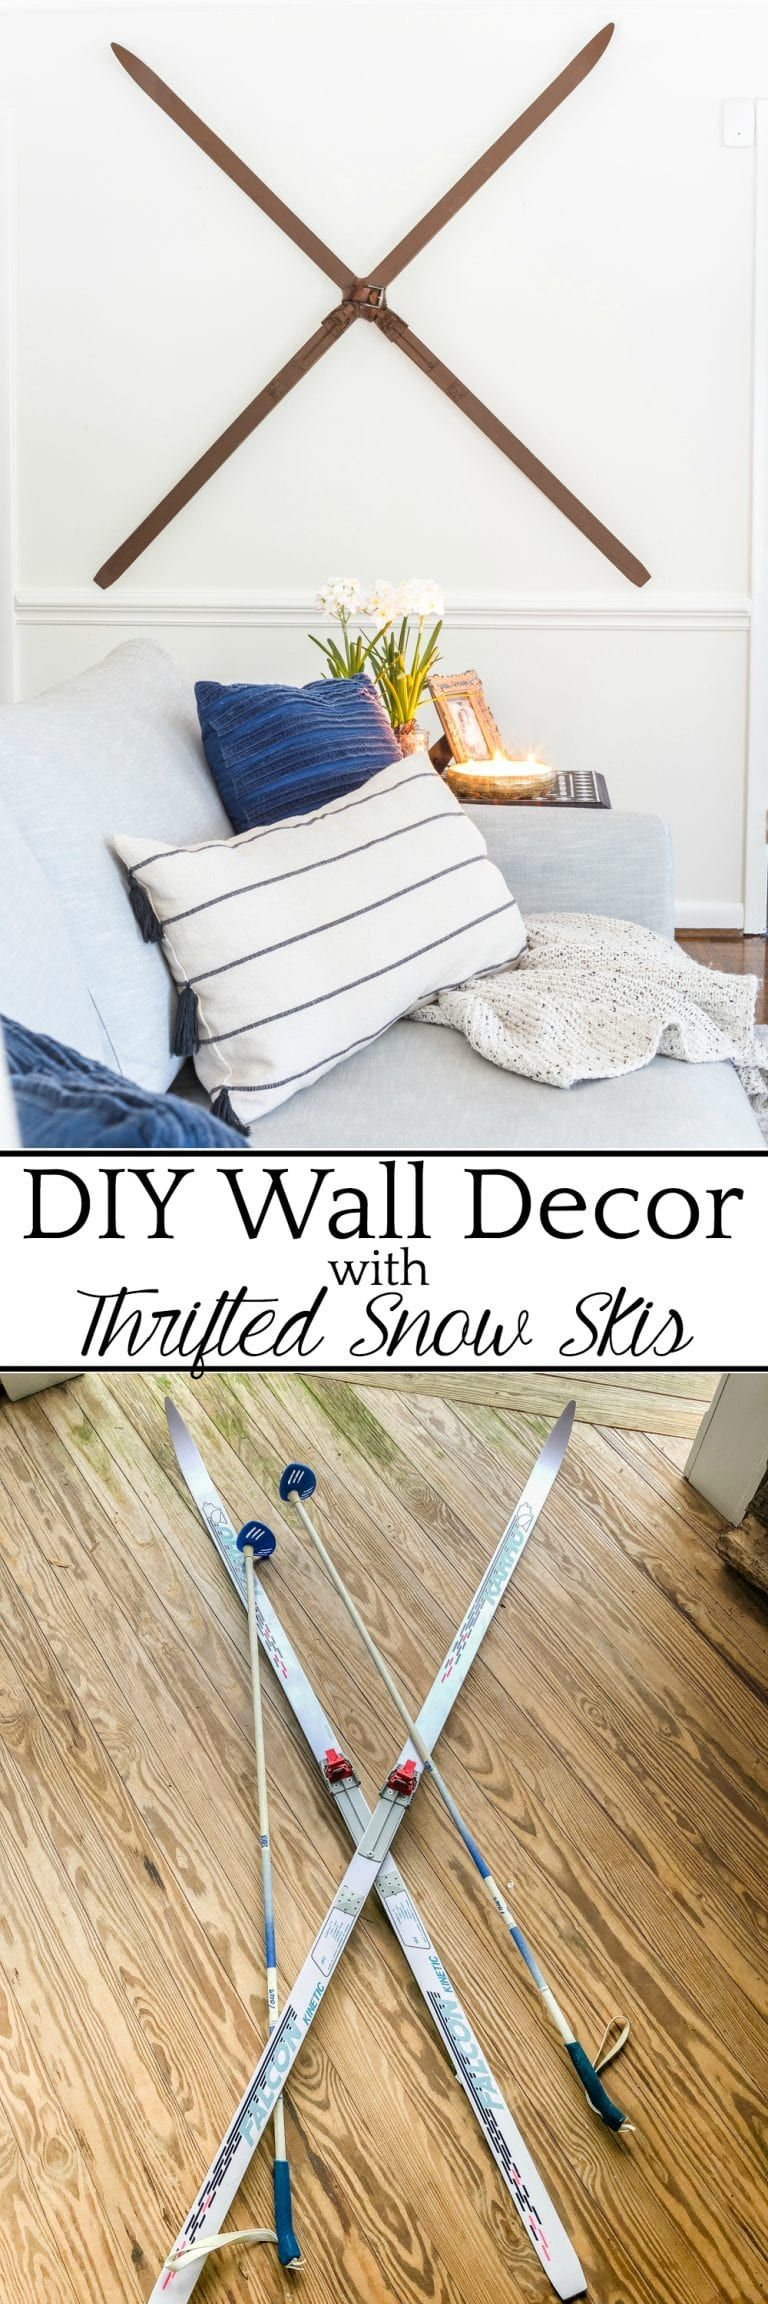 Faux antique winter skis wall decor makeover decorating